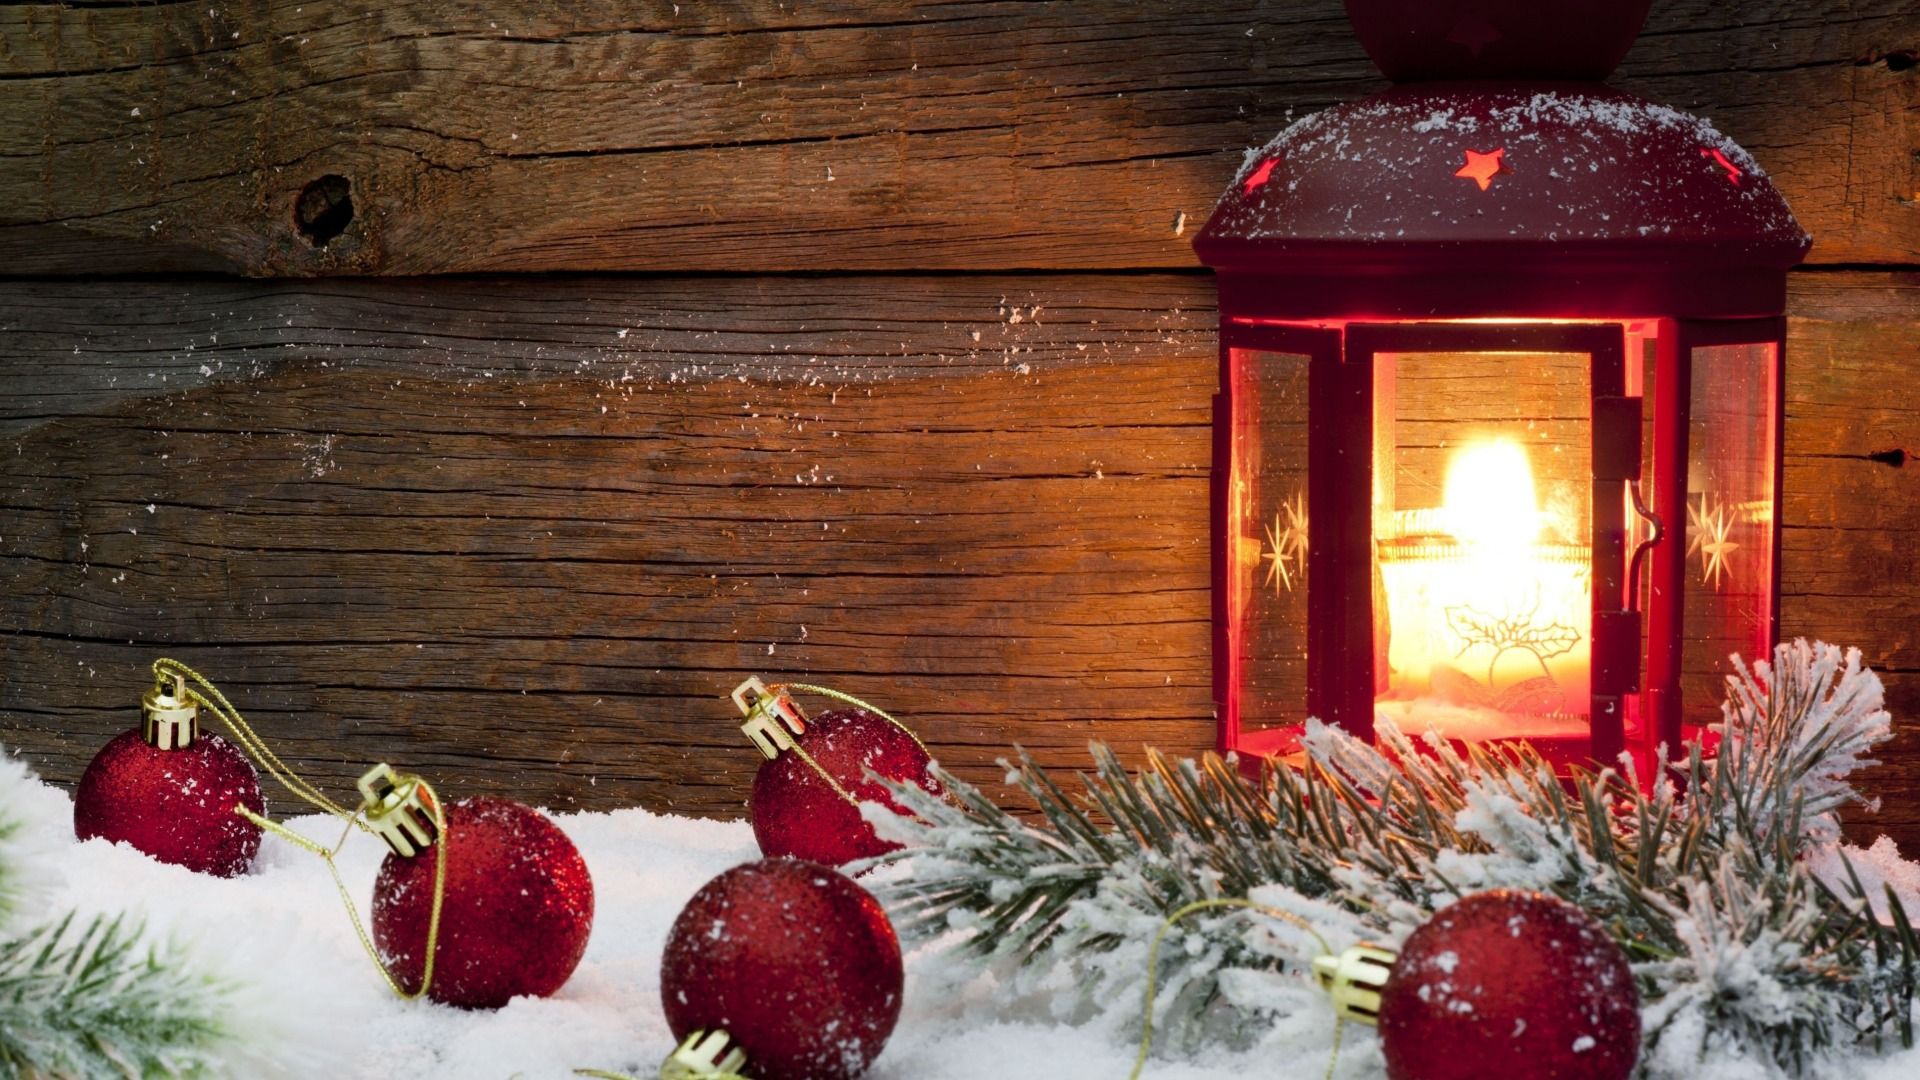 Download-winter-snow-red-background-fire-holiday-balls-toys-new-year-c-wallpaper-wpc9004502